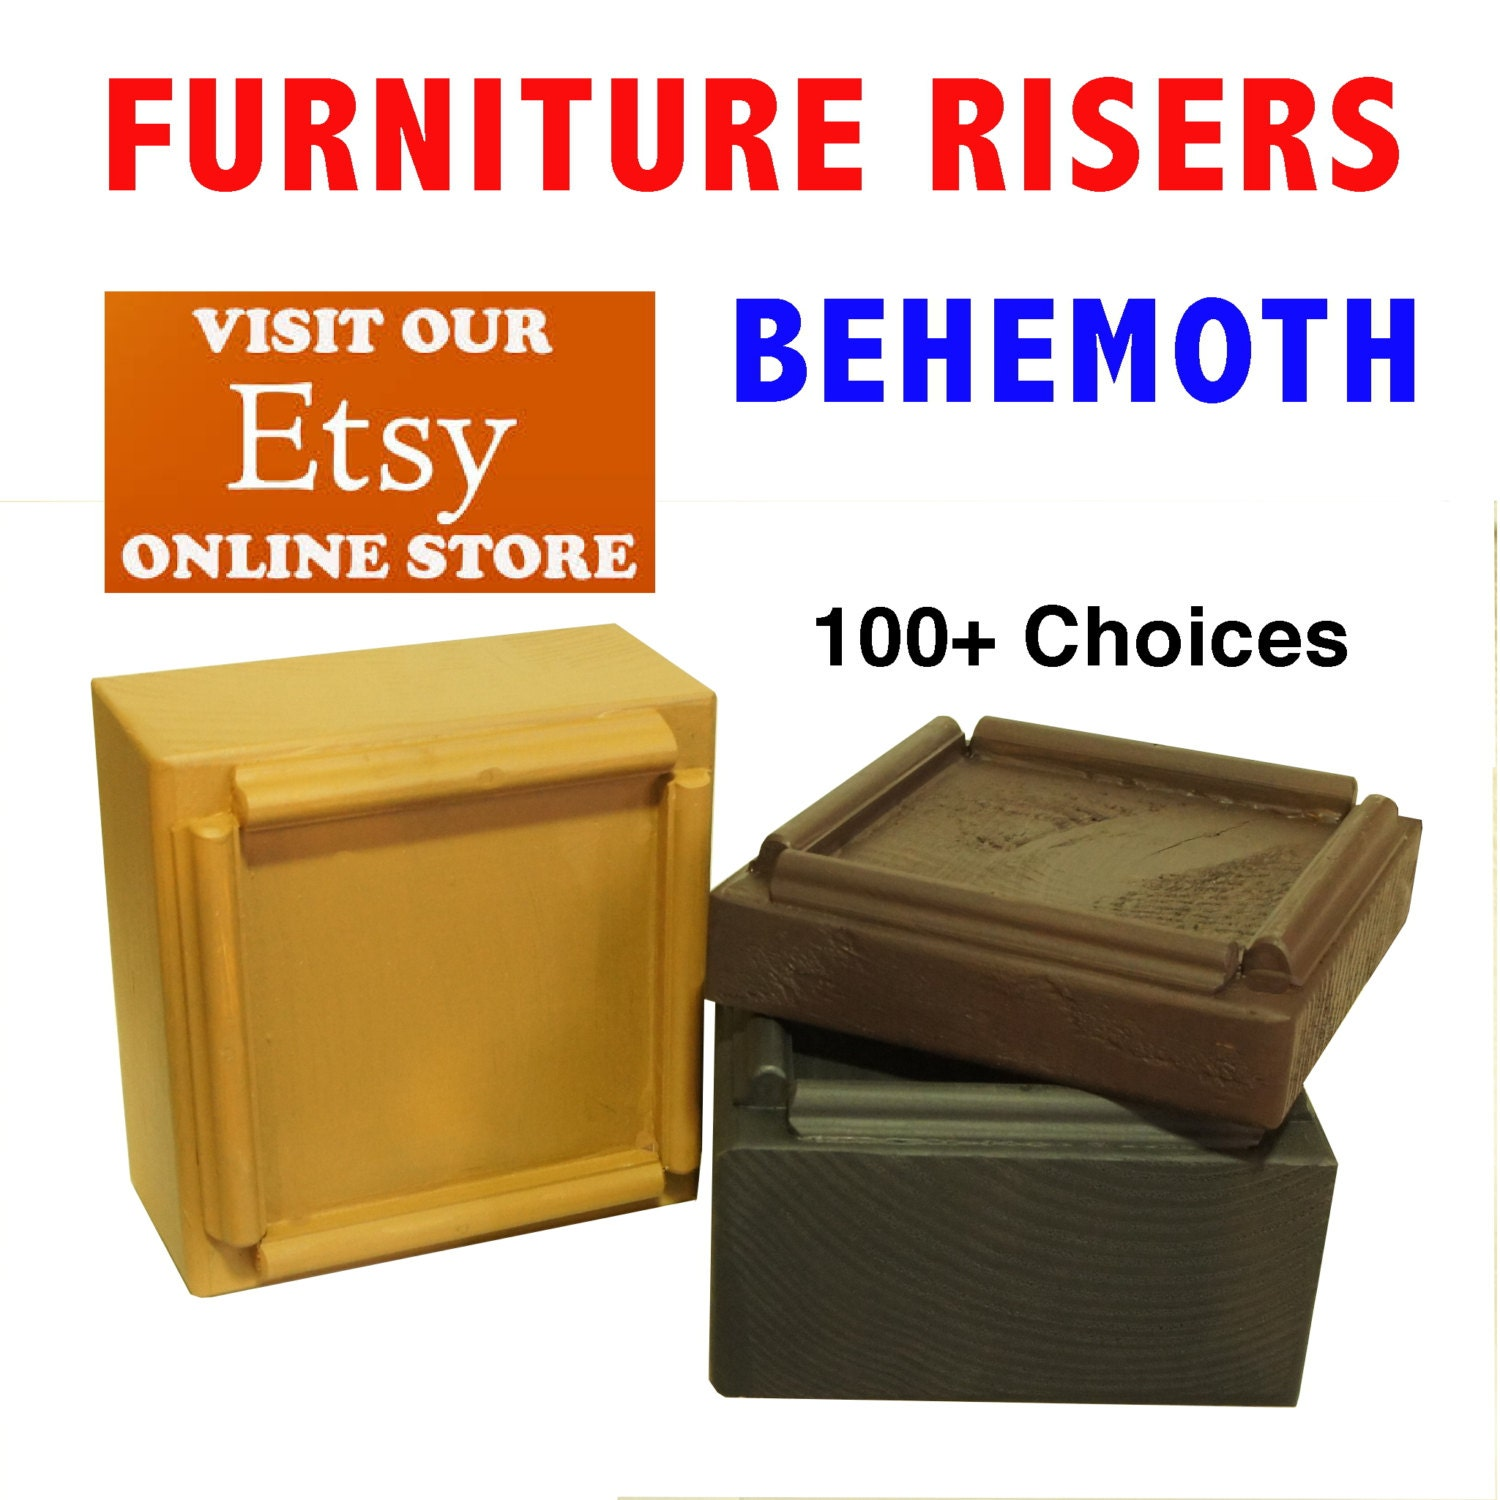 Behemoth furniture risers and bed lifters by for Furniture risers